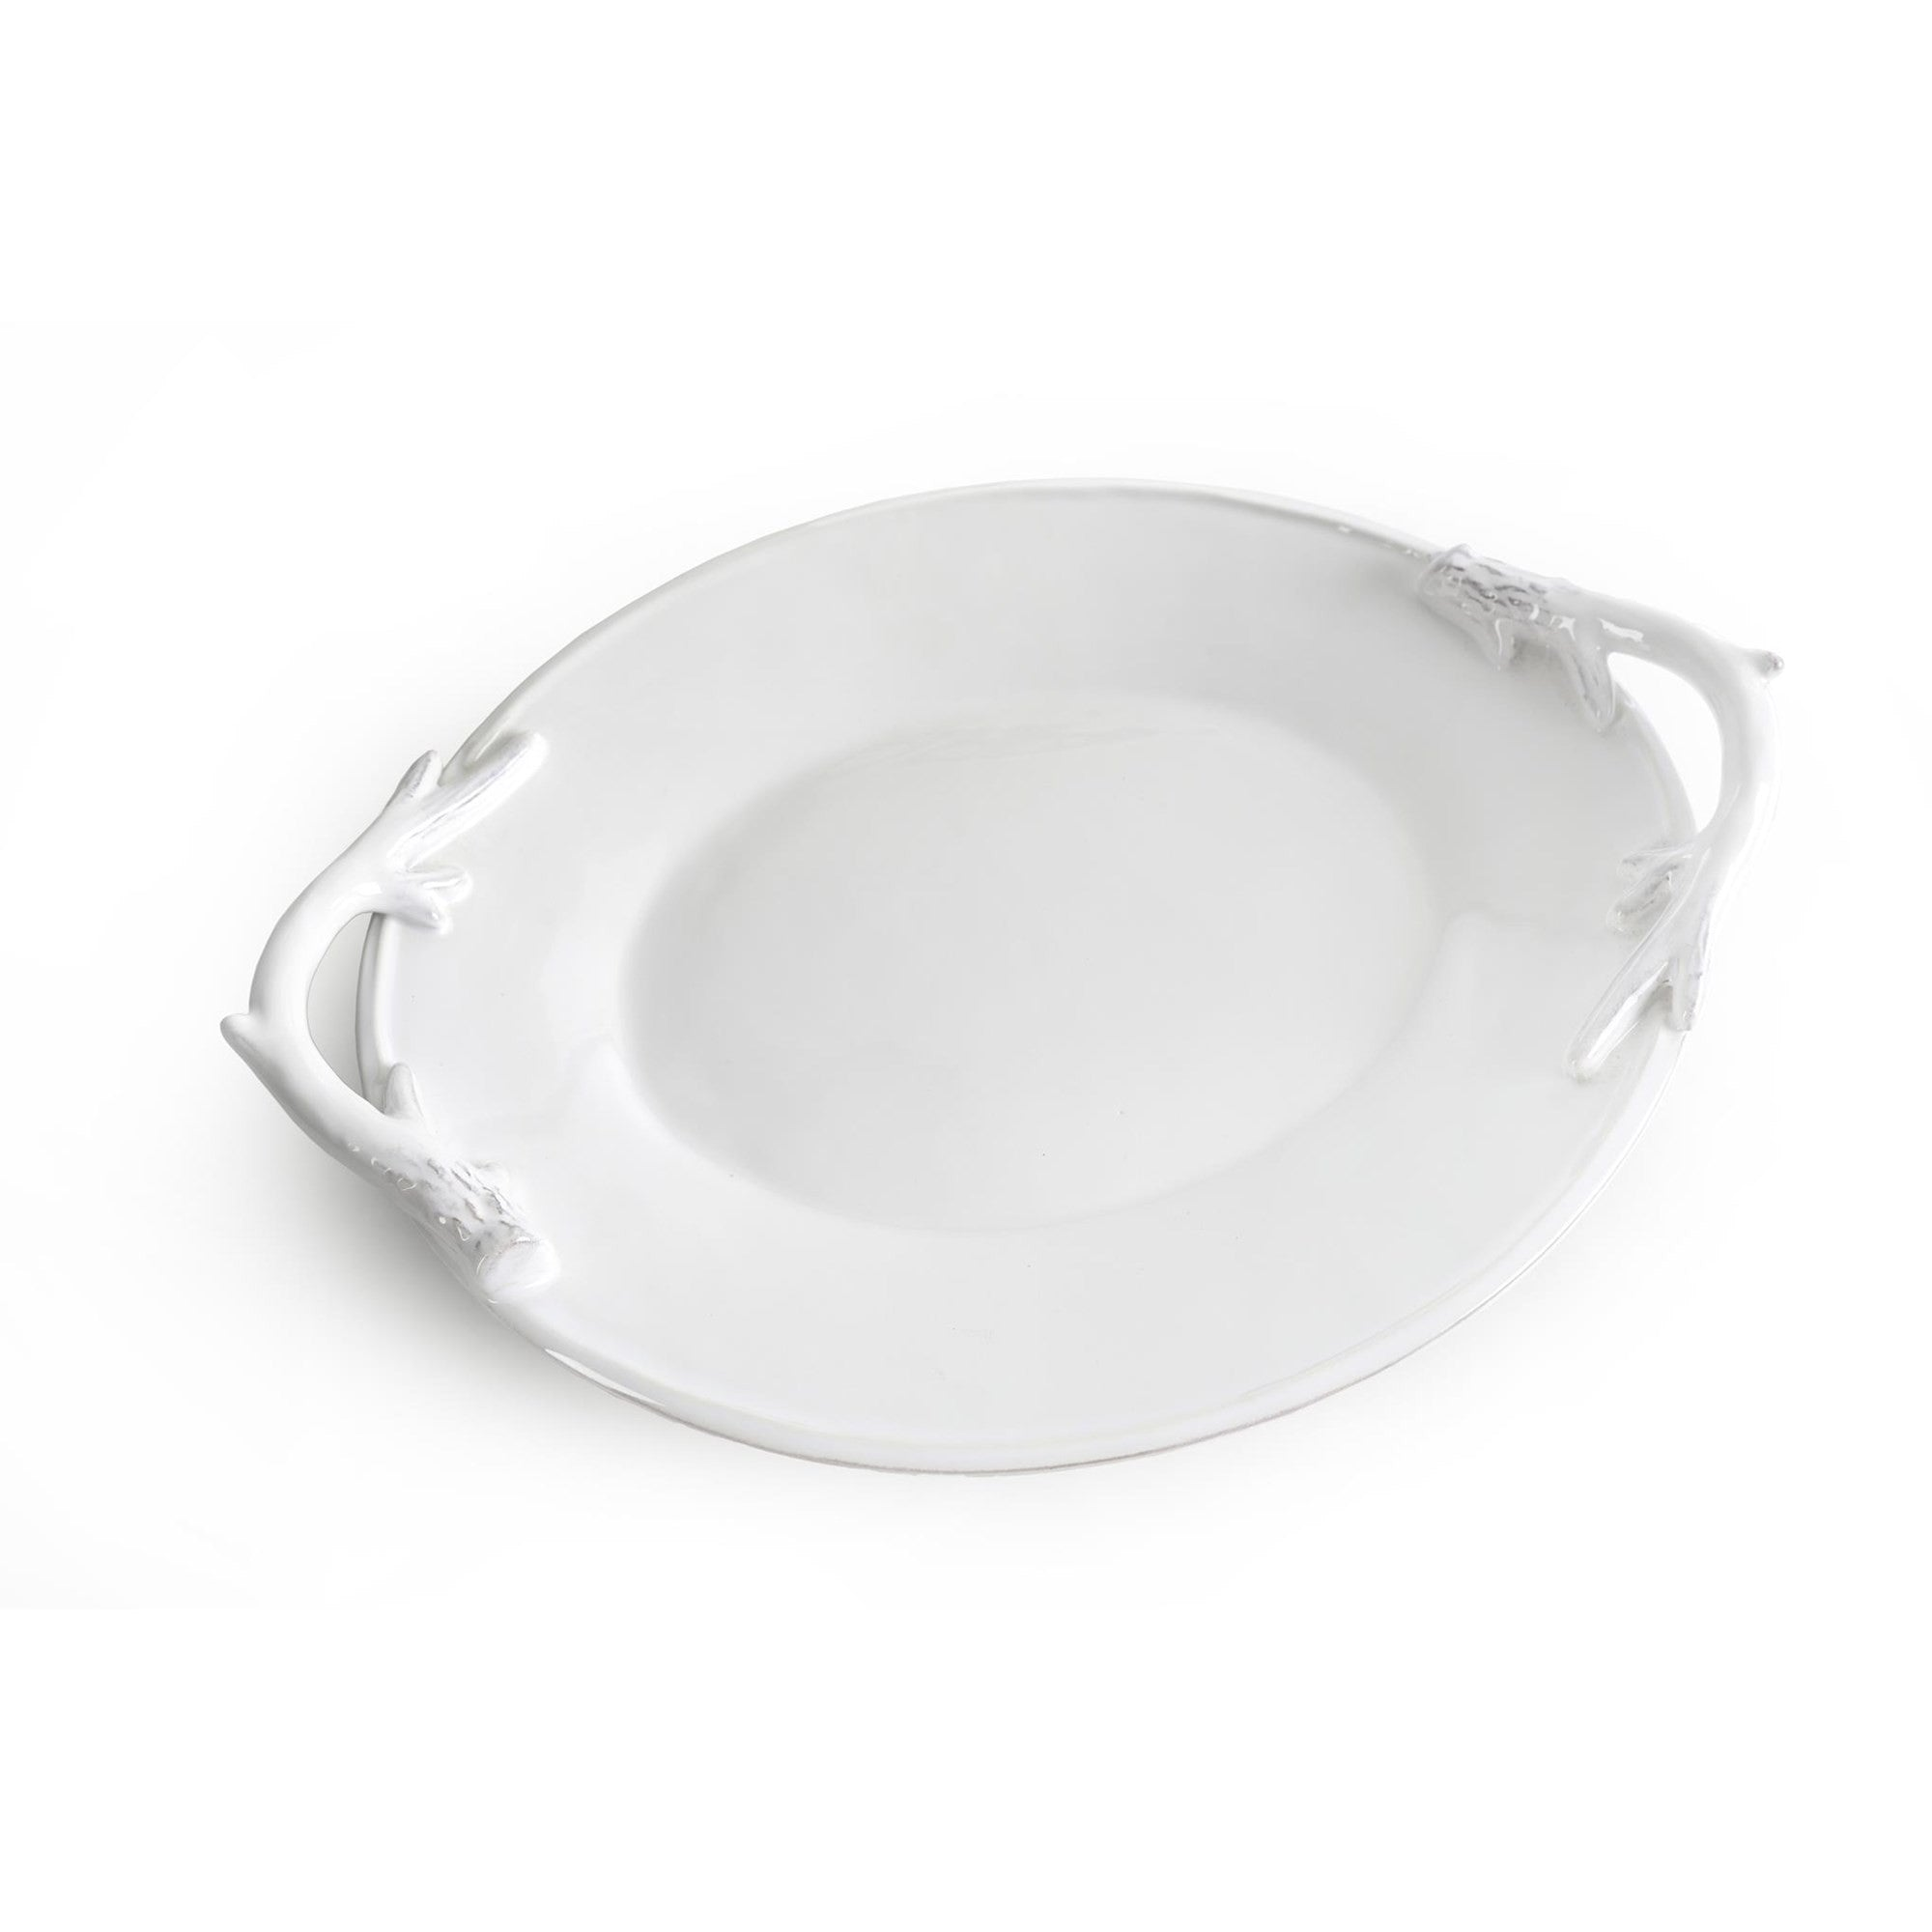 White Antler Oval Platter, IT-Indaba Trading, Putti Fine Furnishings